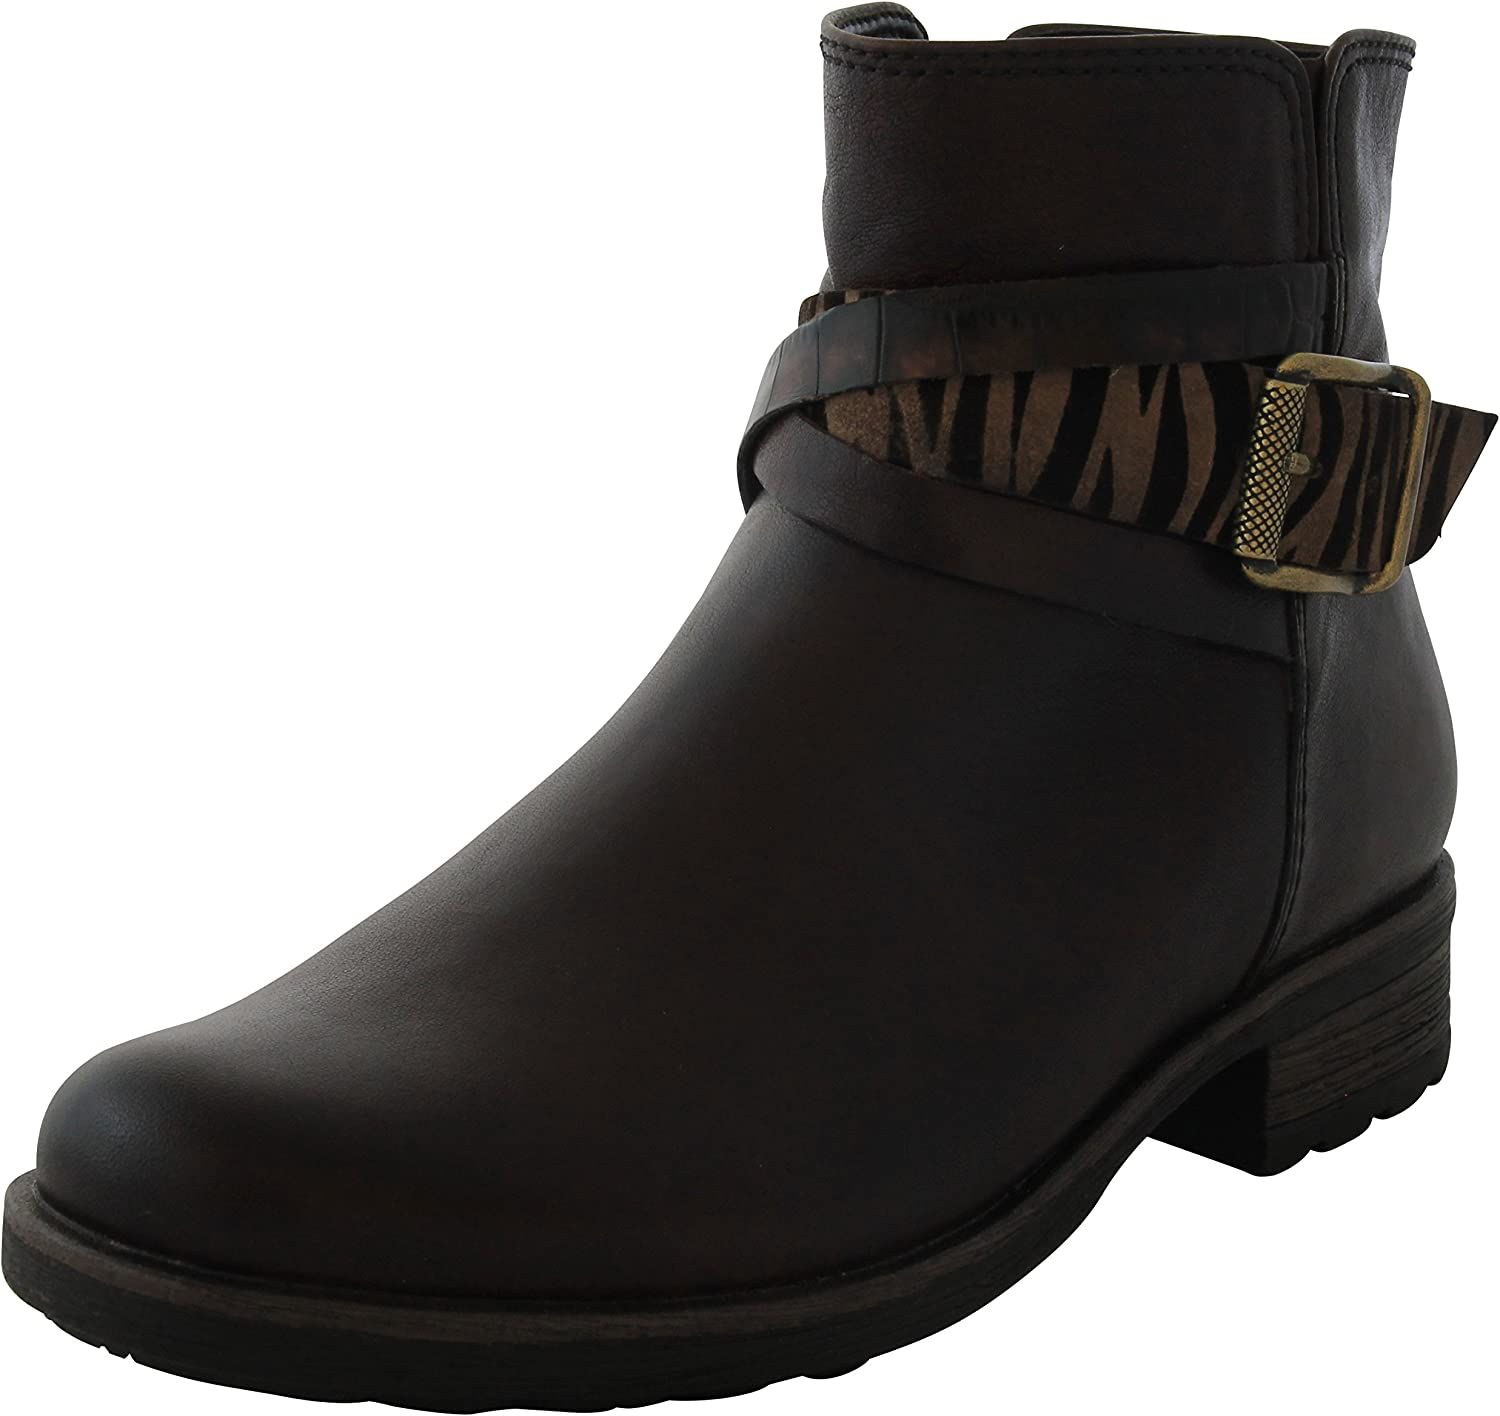 Gabor Shoes Gabor Comfort, Womens Boots